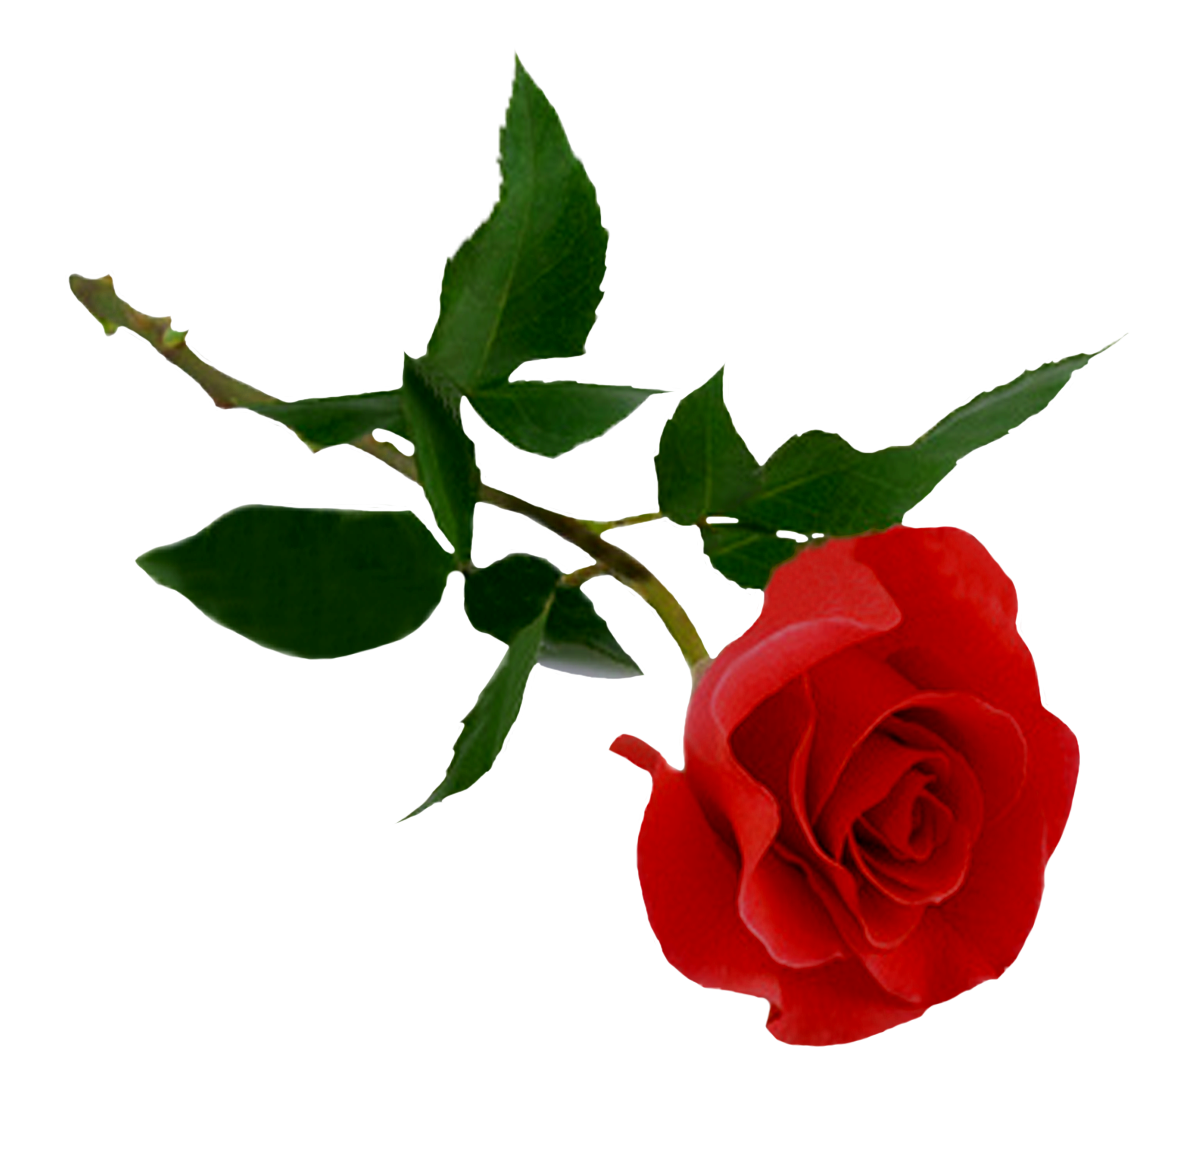 Red Rose Png Image Purepng Free Transparent Cc0 Png Image Library